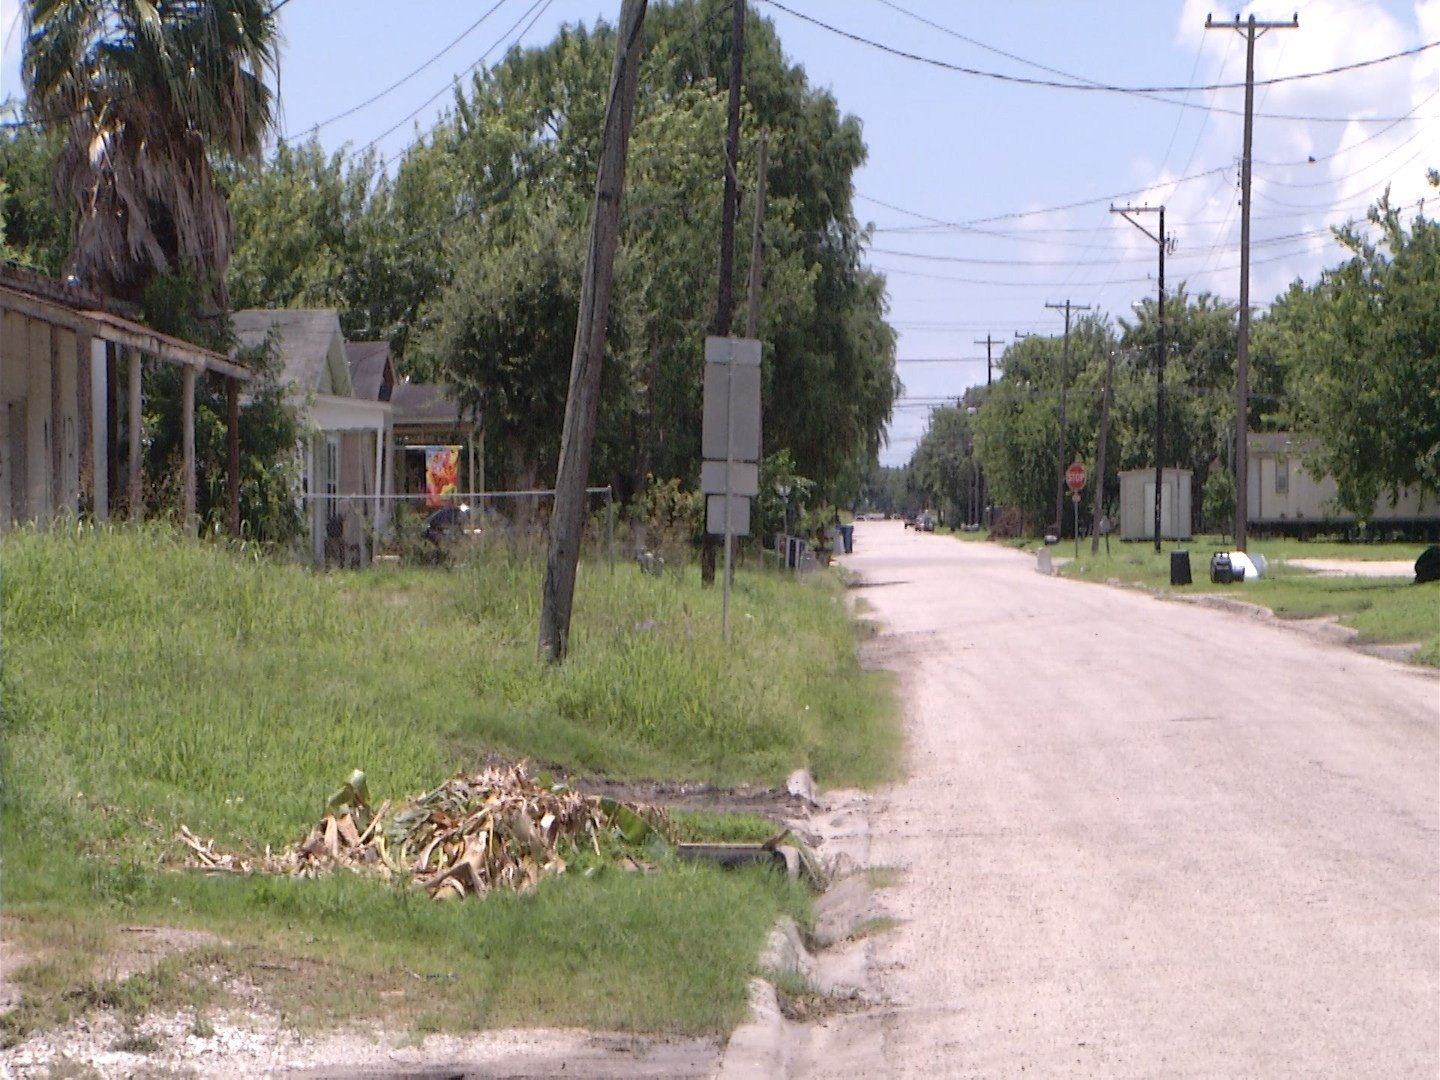 port lavaca men A port lavaca man was charged with murder sunday after an acquaintance's body was found in a front yard with several stab wounds, police said.